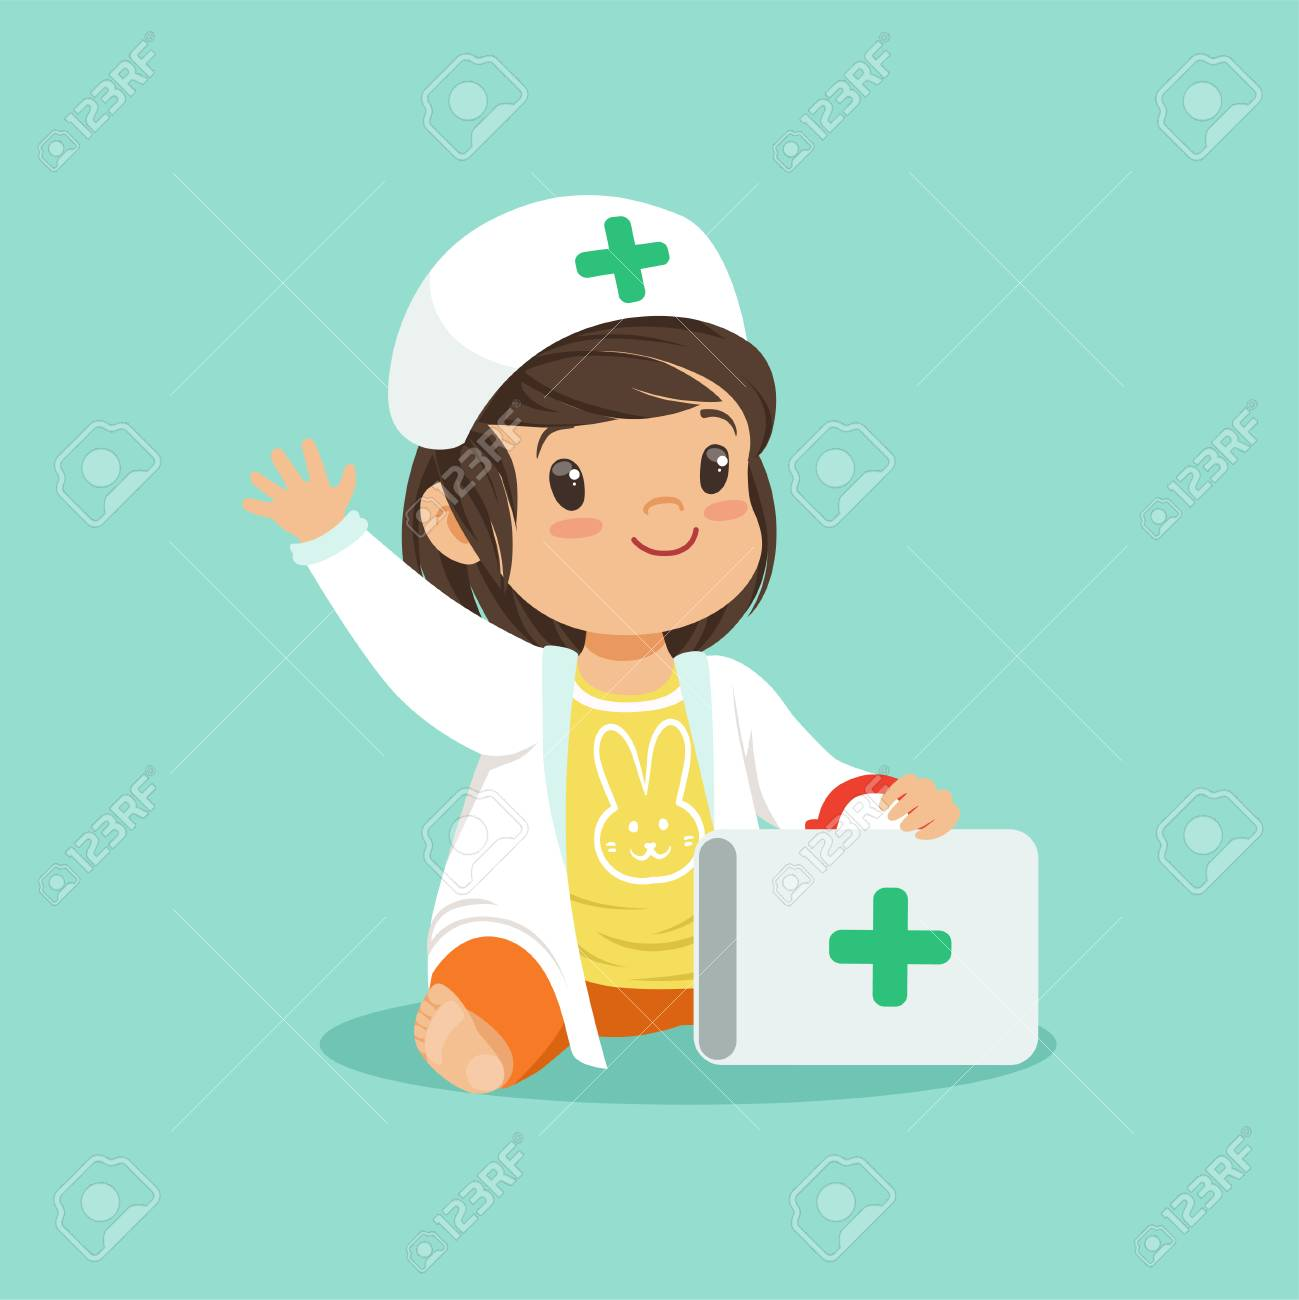 Smiling Toddler Girl Holding Medical Suitcase And Waving Hand - Toddler-cartoon-characters